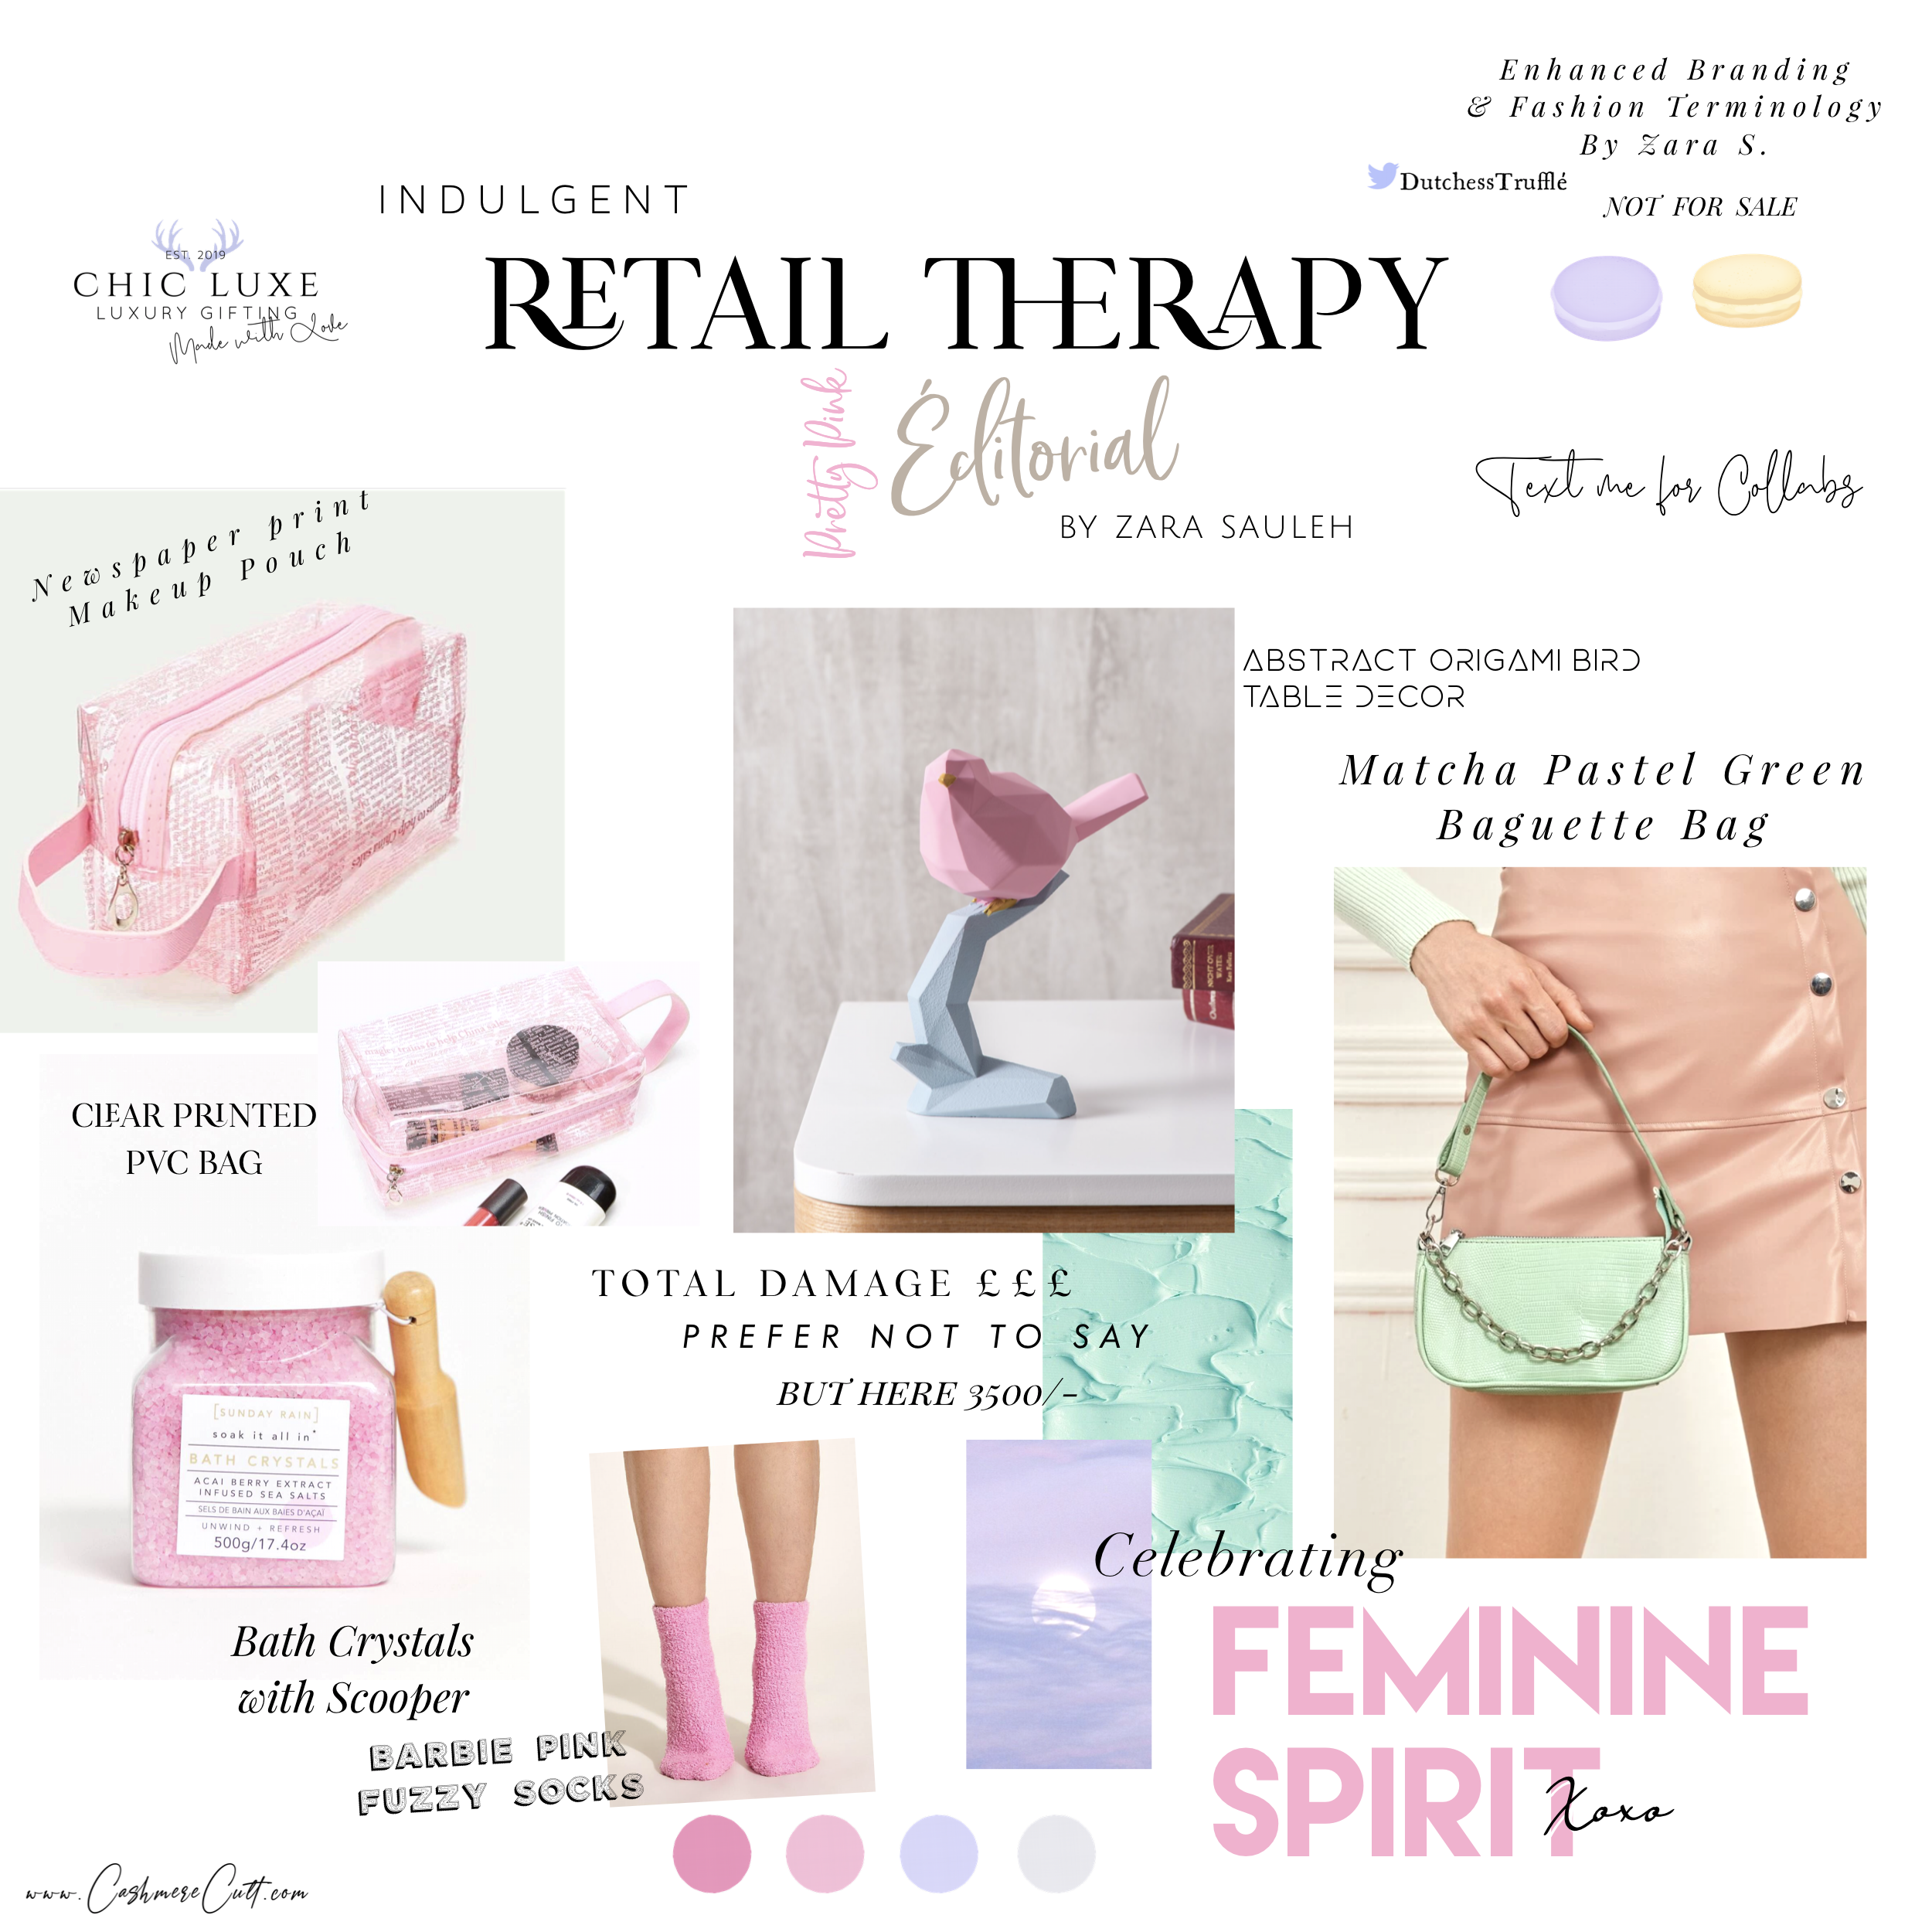 ‪www.cashmerecult.com   Or sibylmoonchild.com/chic-luxe #pink #gifts #giftingideas #selfindulgence #giftsforher #SelfCareSunday #selfpampering #kits #accessories #beauty #luxury #aesthetic #90s #love #fashion #pretty #chic #love #cute #beauty #blog #style #lifestyle‬